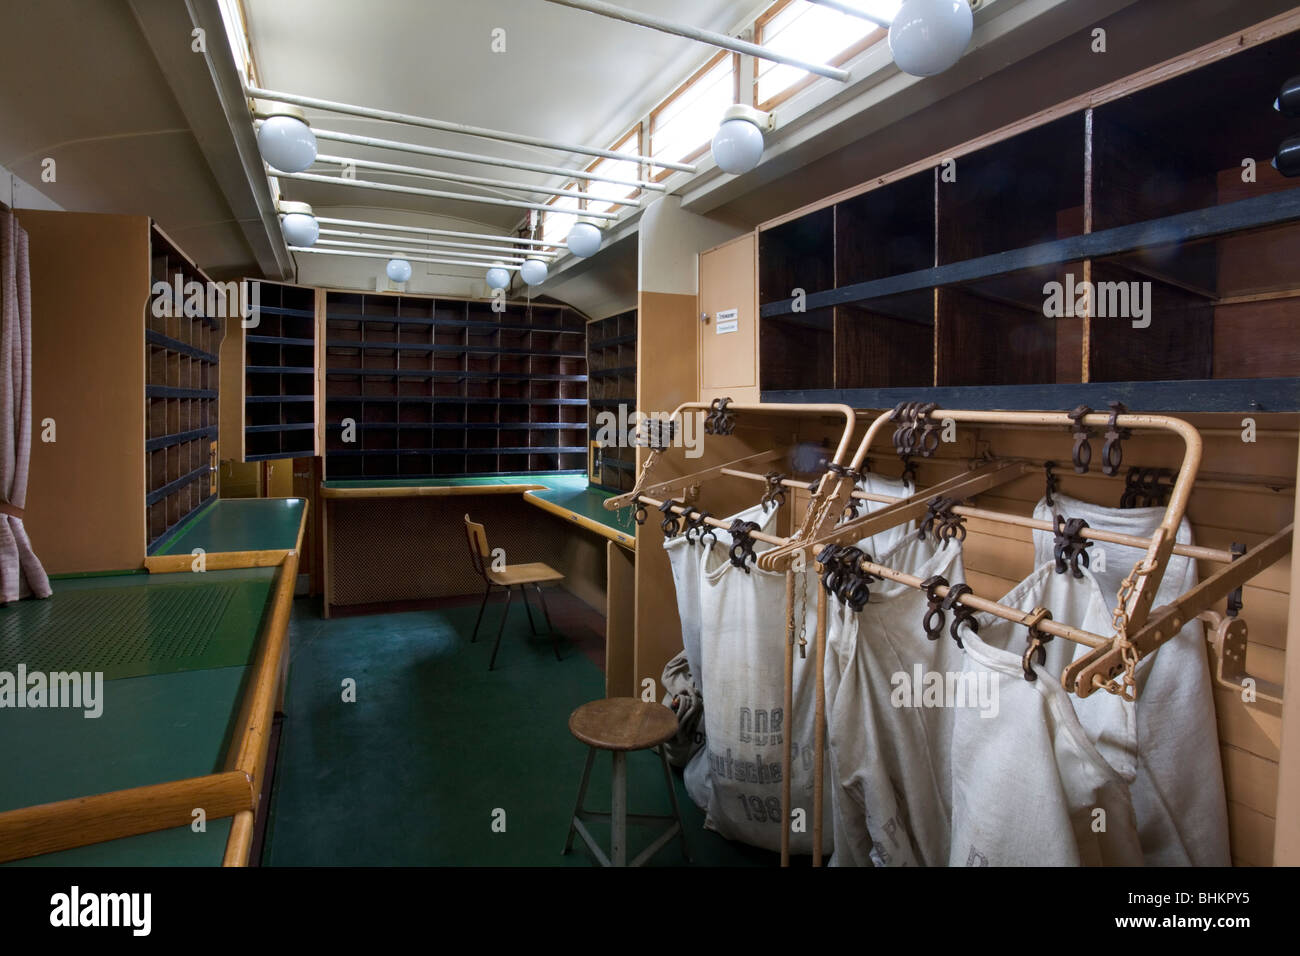 A 1950's Postal train coach, with mail bags and letter slots. Munich, Germany - Stock Image